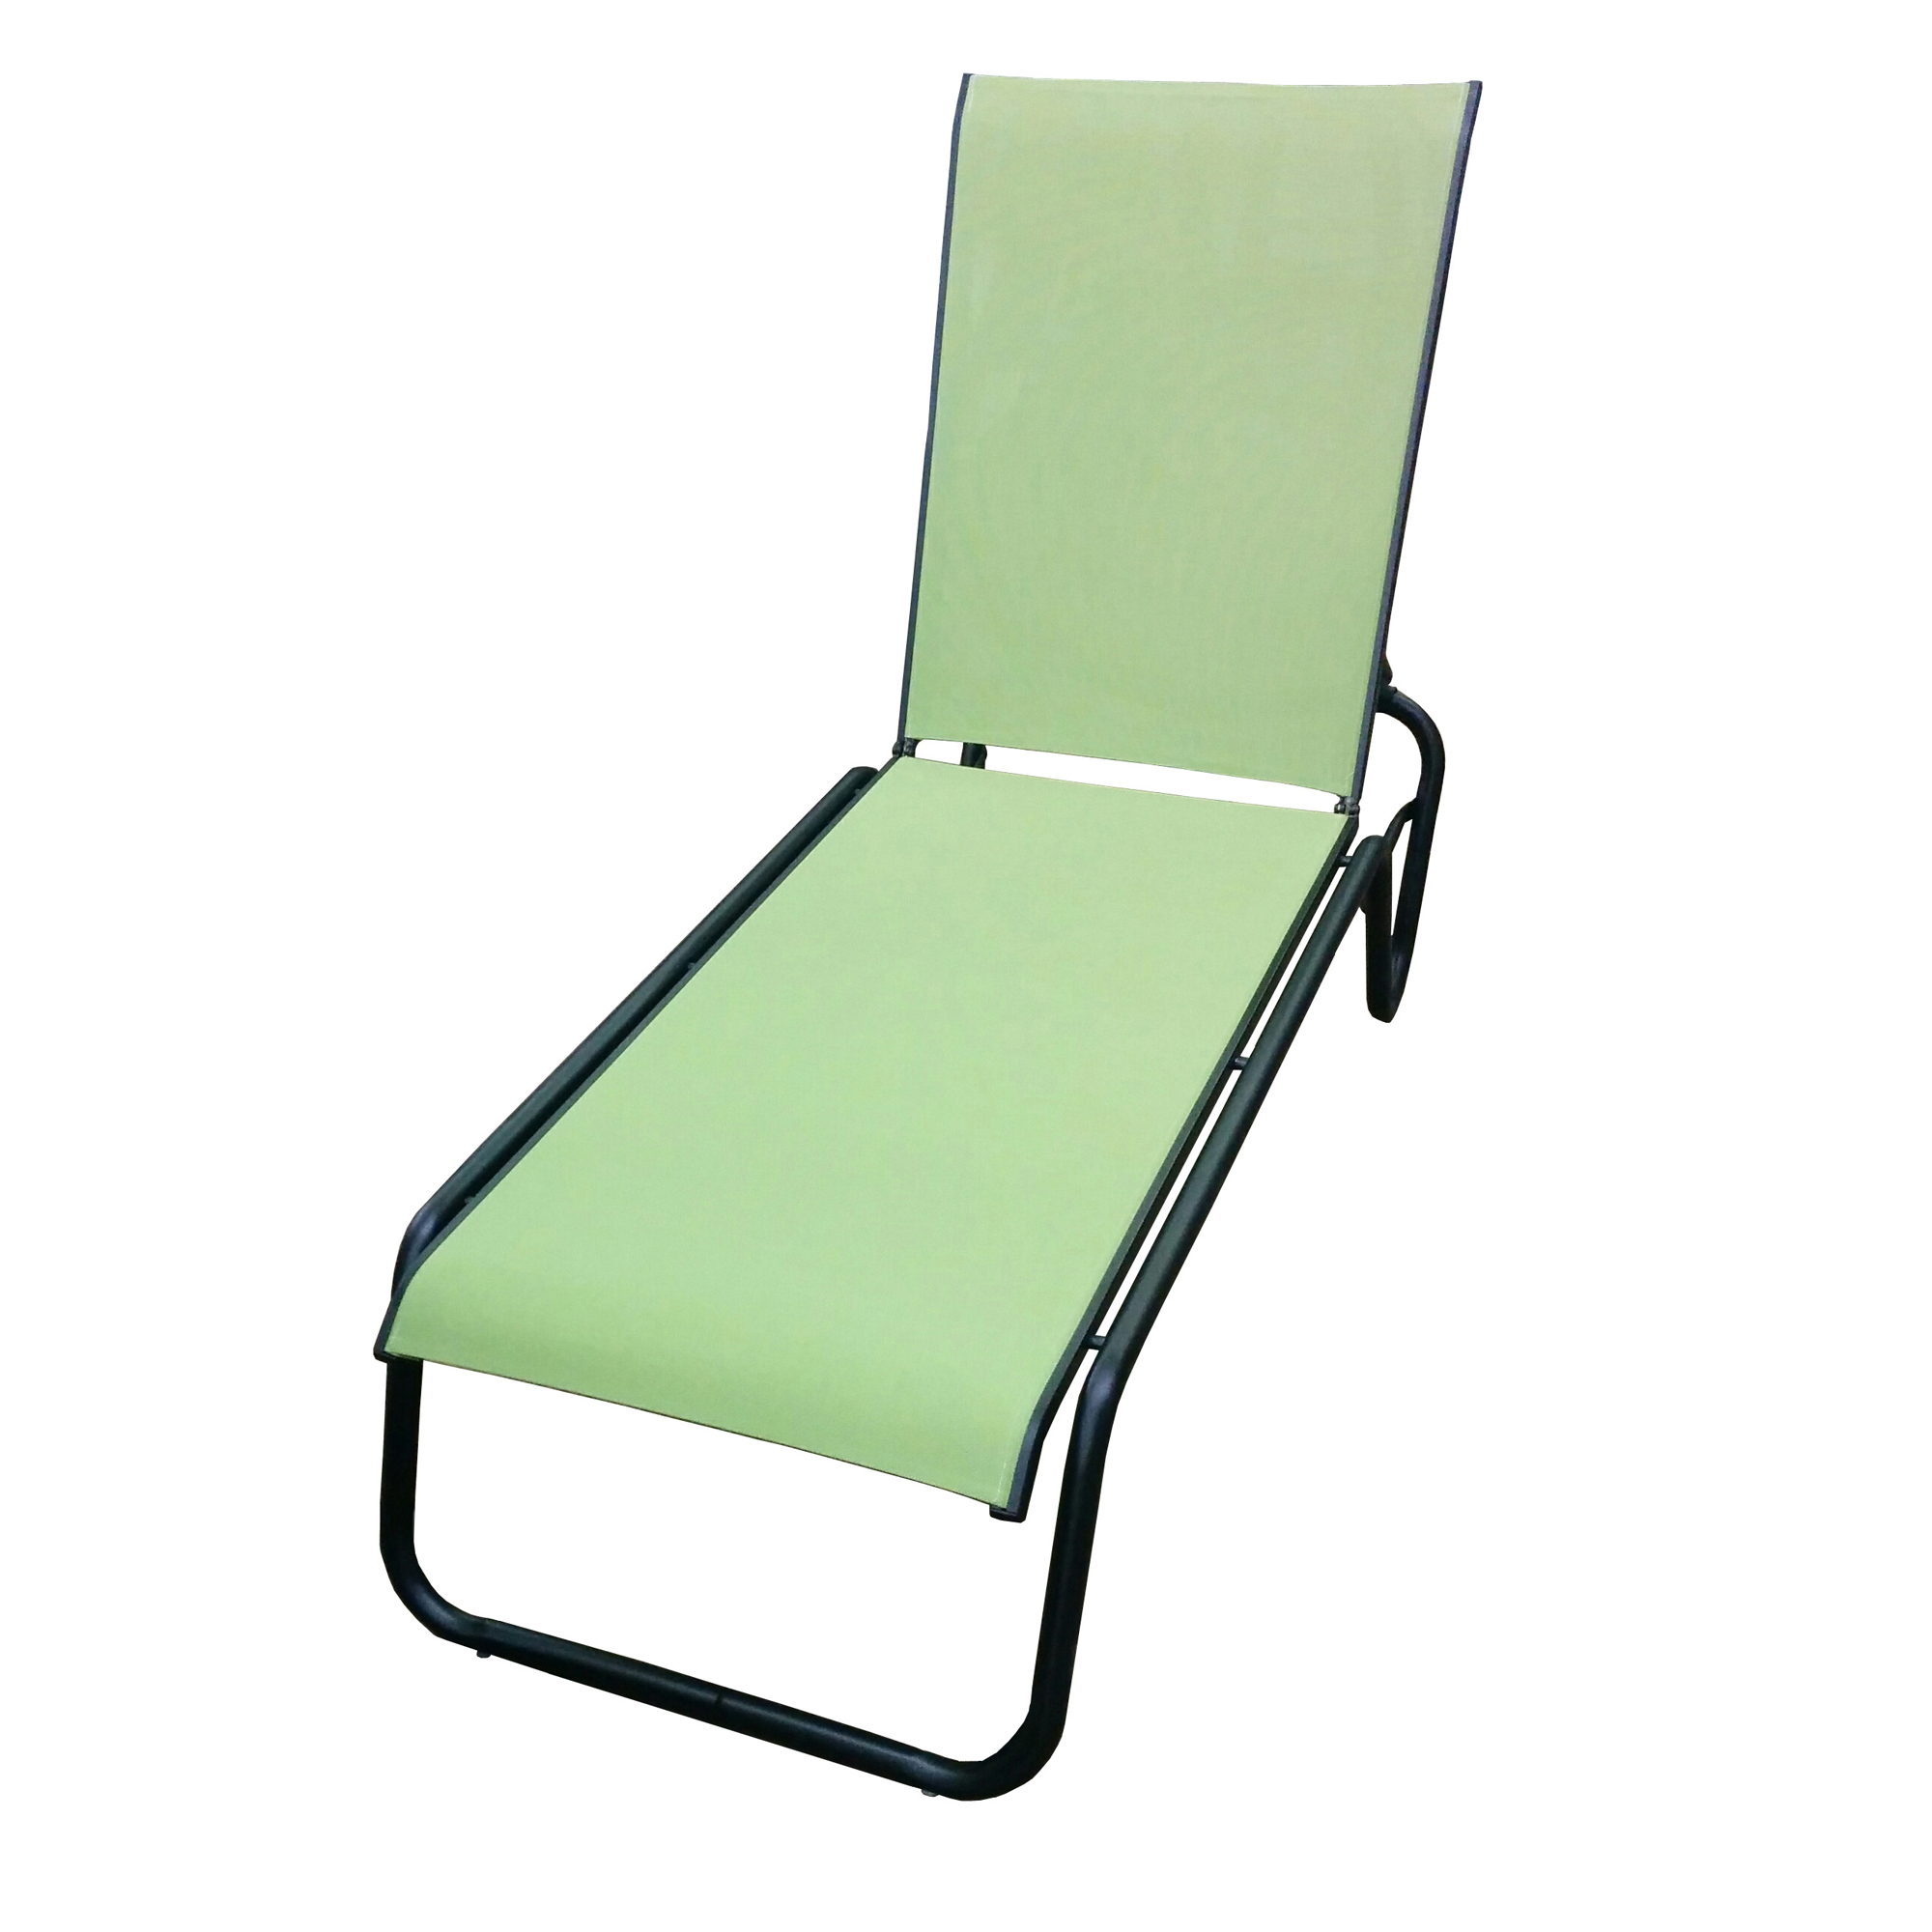 id green century at f master longues seating louis duchesse chaise xvi sale or for lounge furniture longue style in